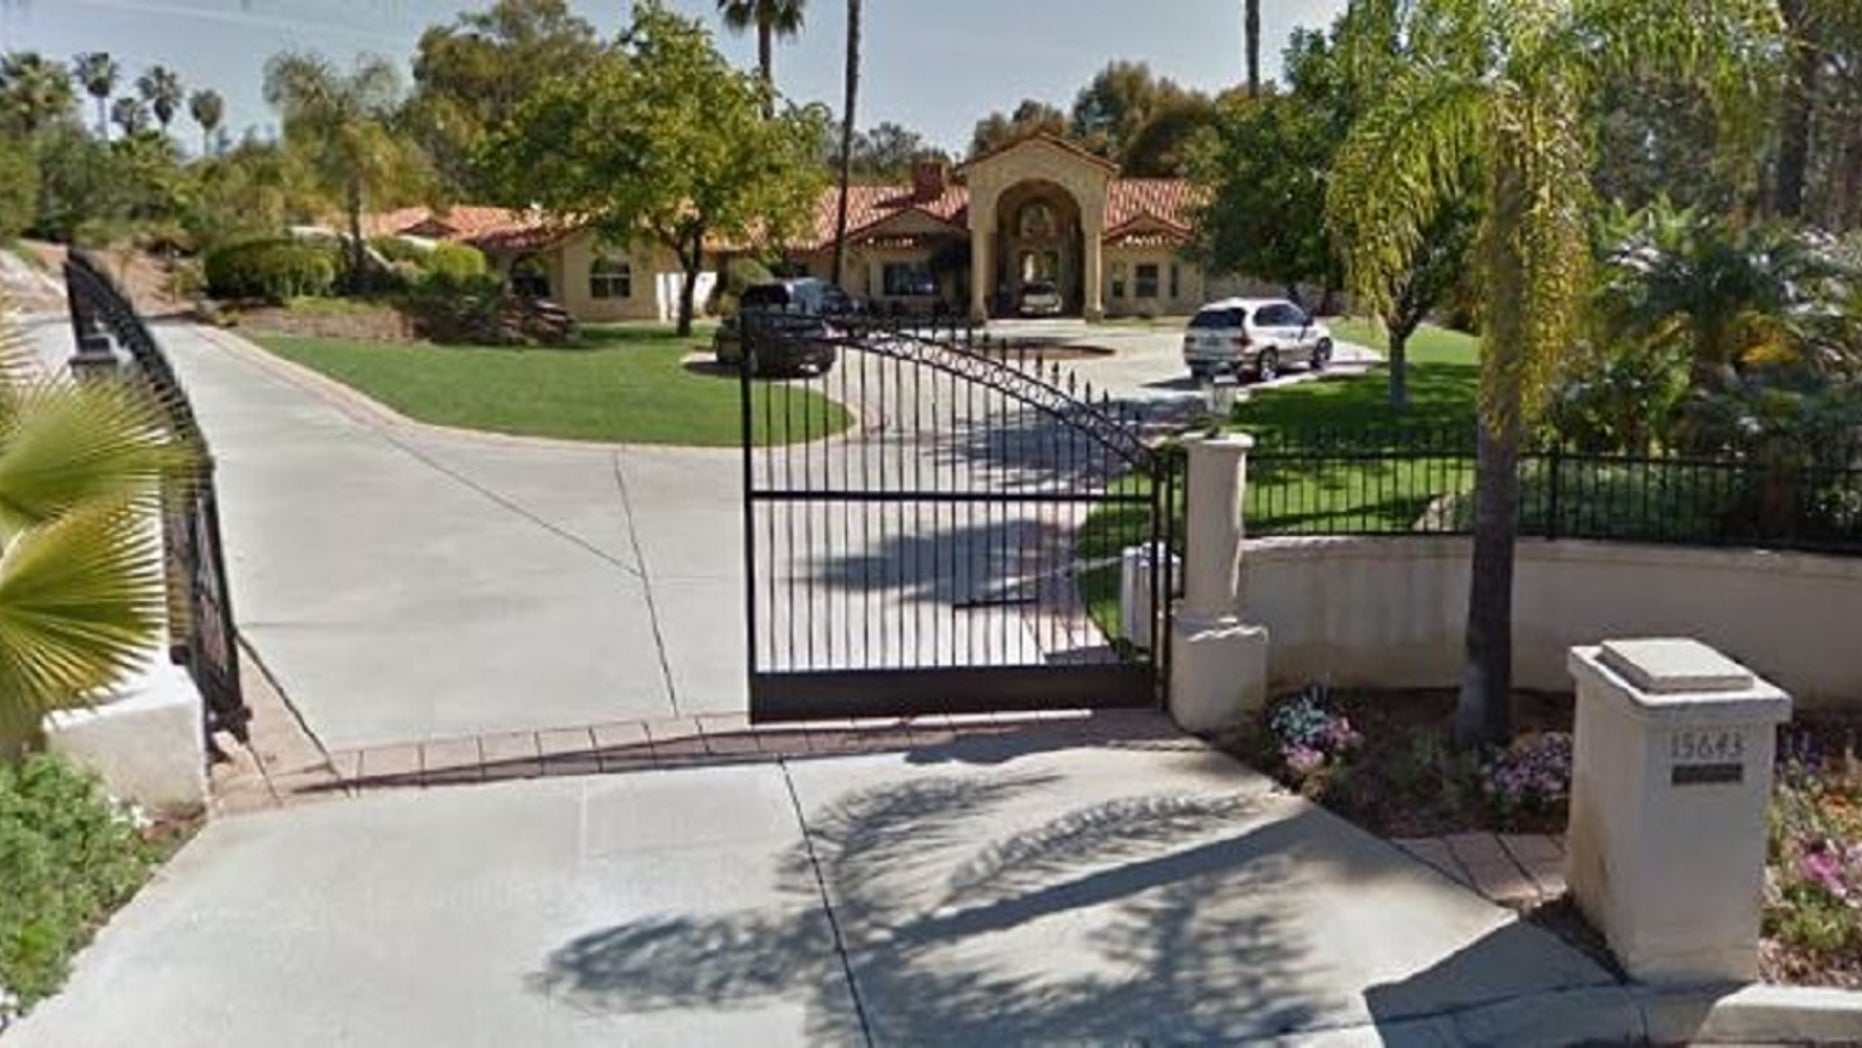 A squatter has reportedly been living in the multimillion-dollar home of former MLB player Tony Gwynn.